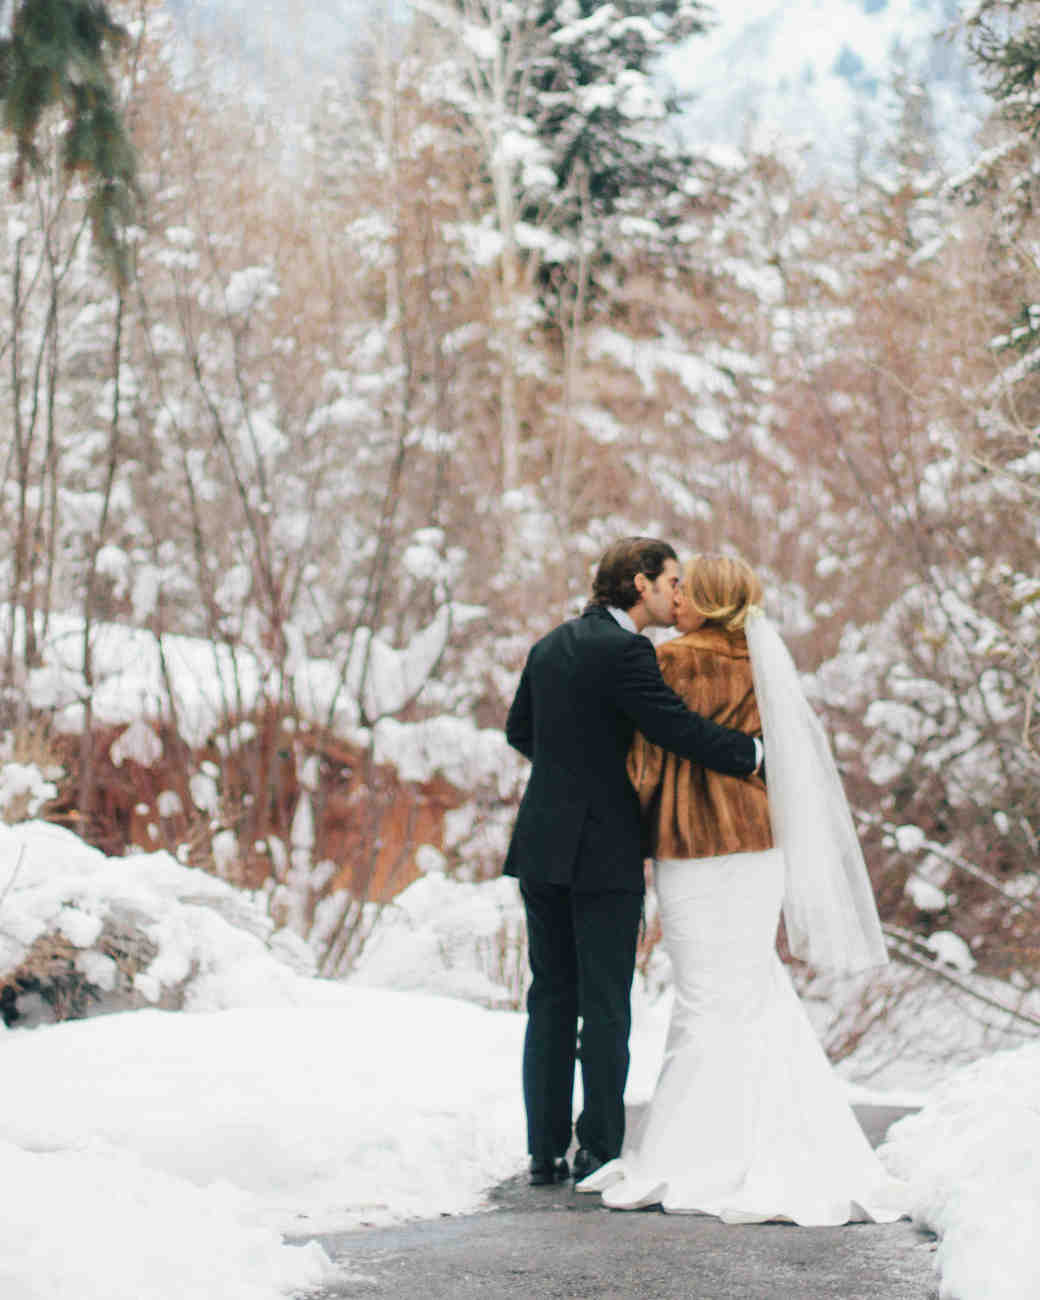 Winter Weddings: Whitney And Jordan's Winter Wedding In Utah